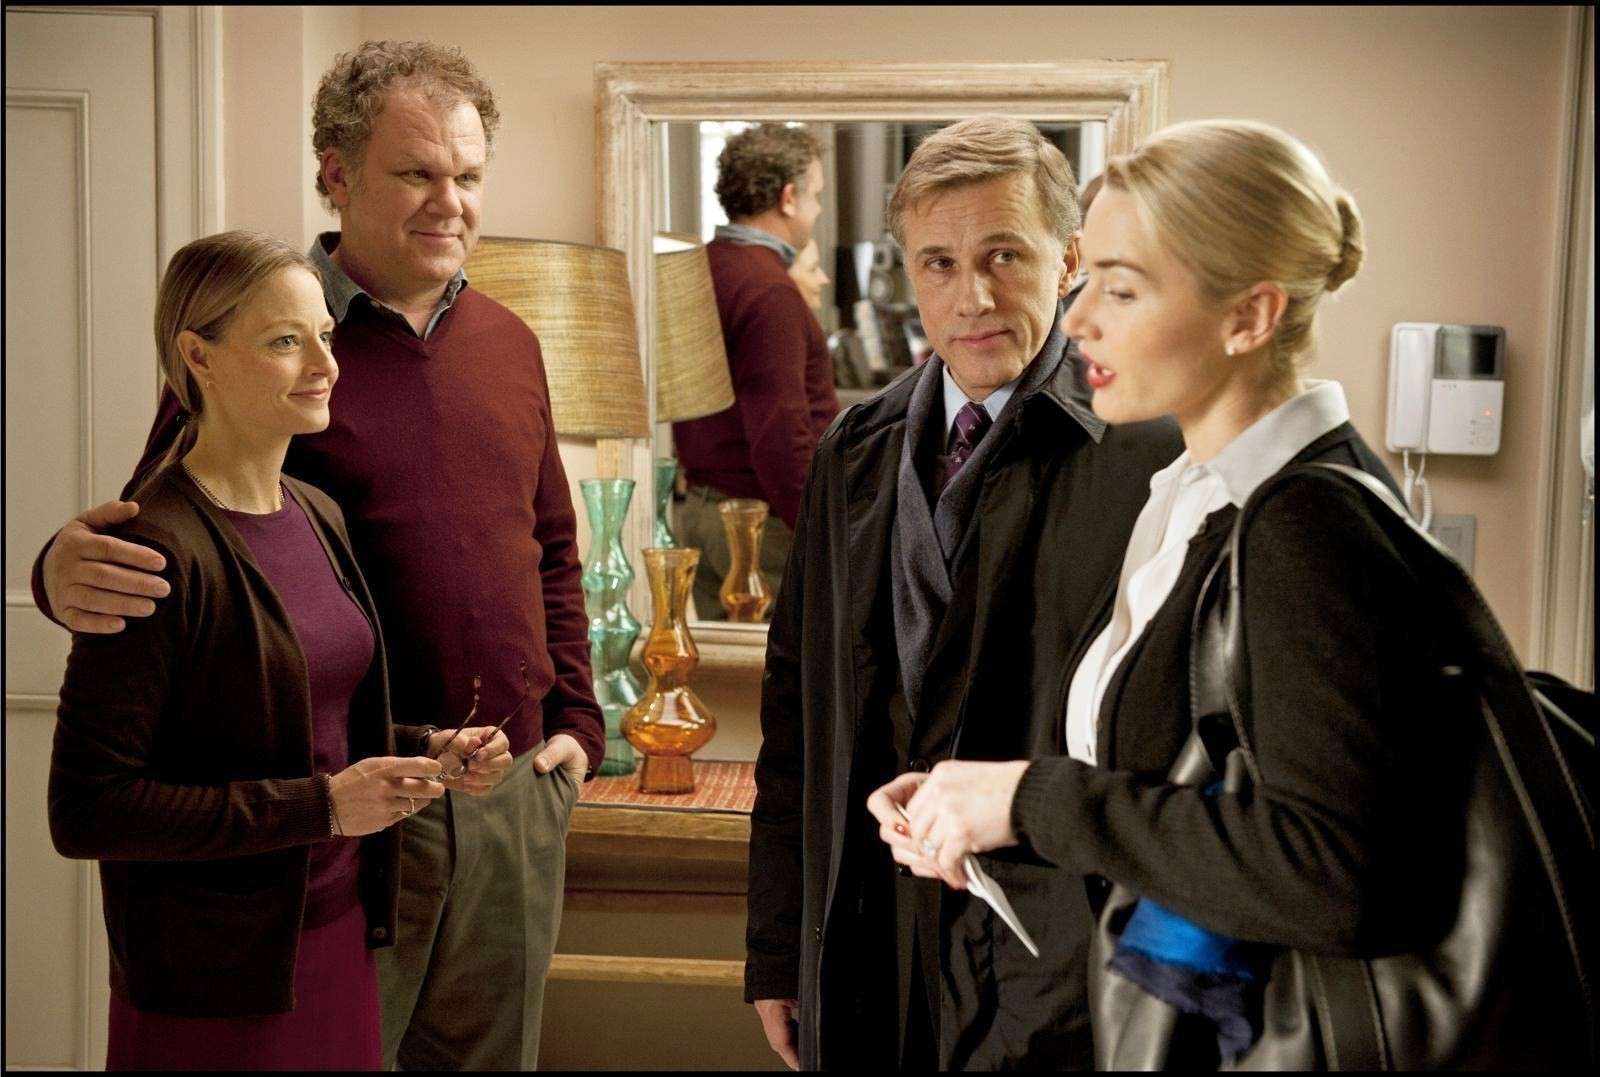 Jodie Foster, John C. Reilly, Christoph Waltz and Kate Winslet in Carnage